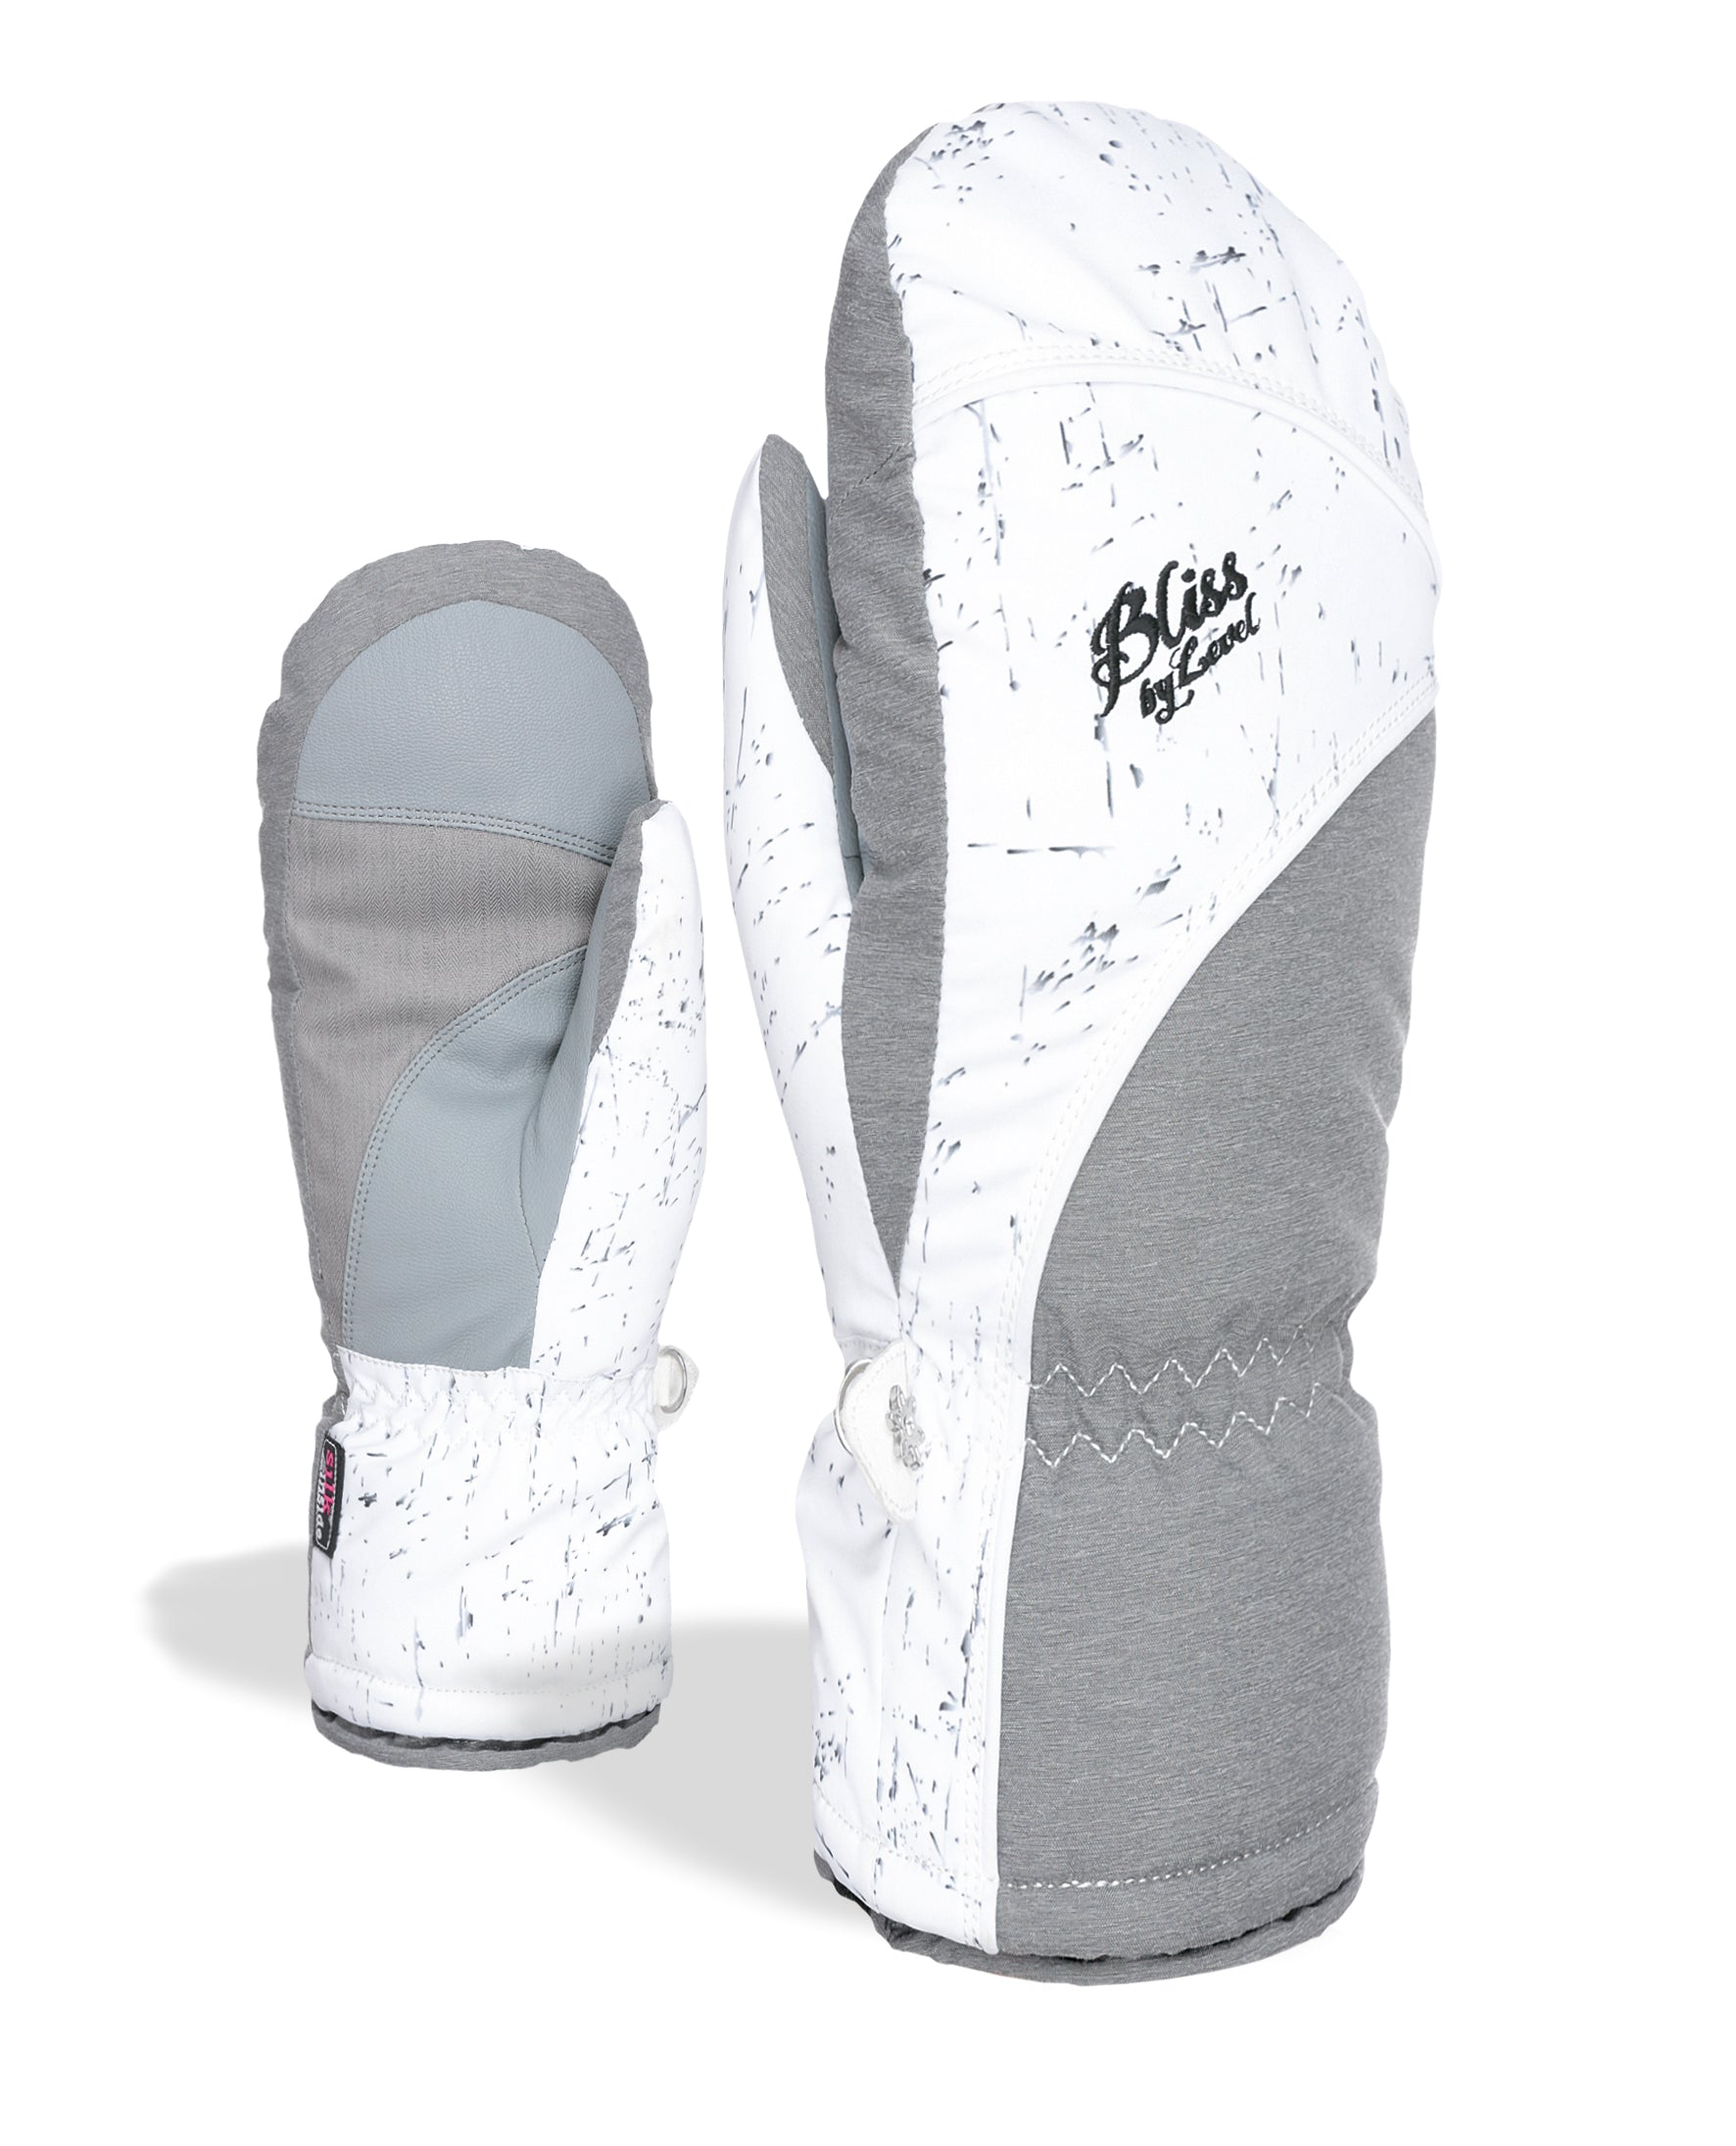 Bliss Mummies Skiing Mitt